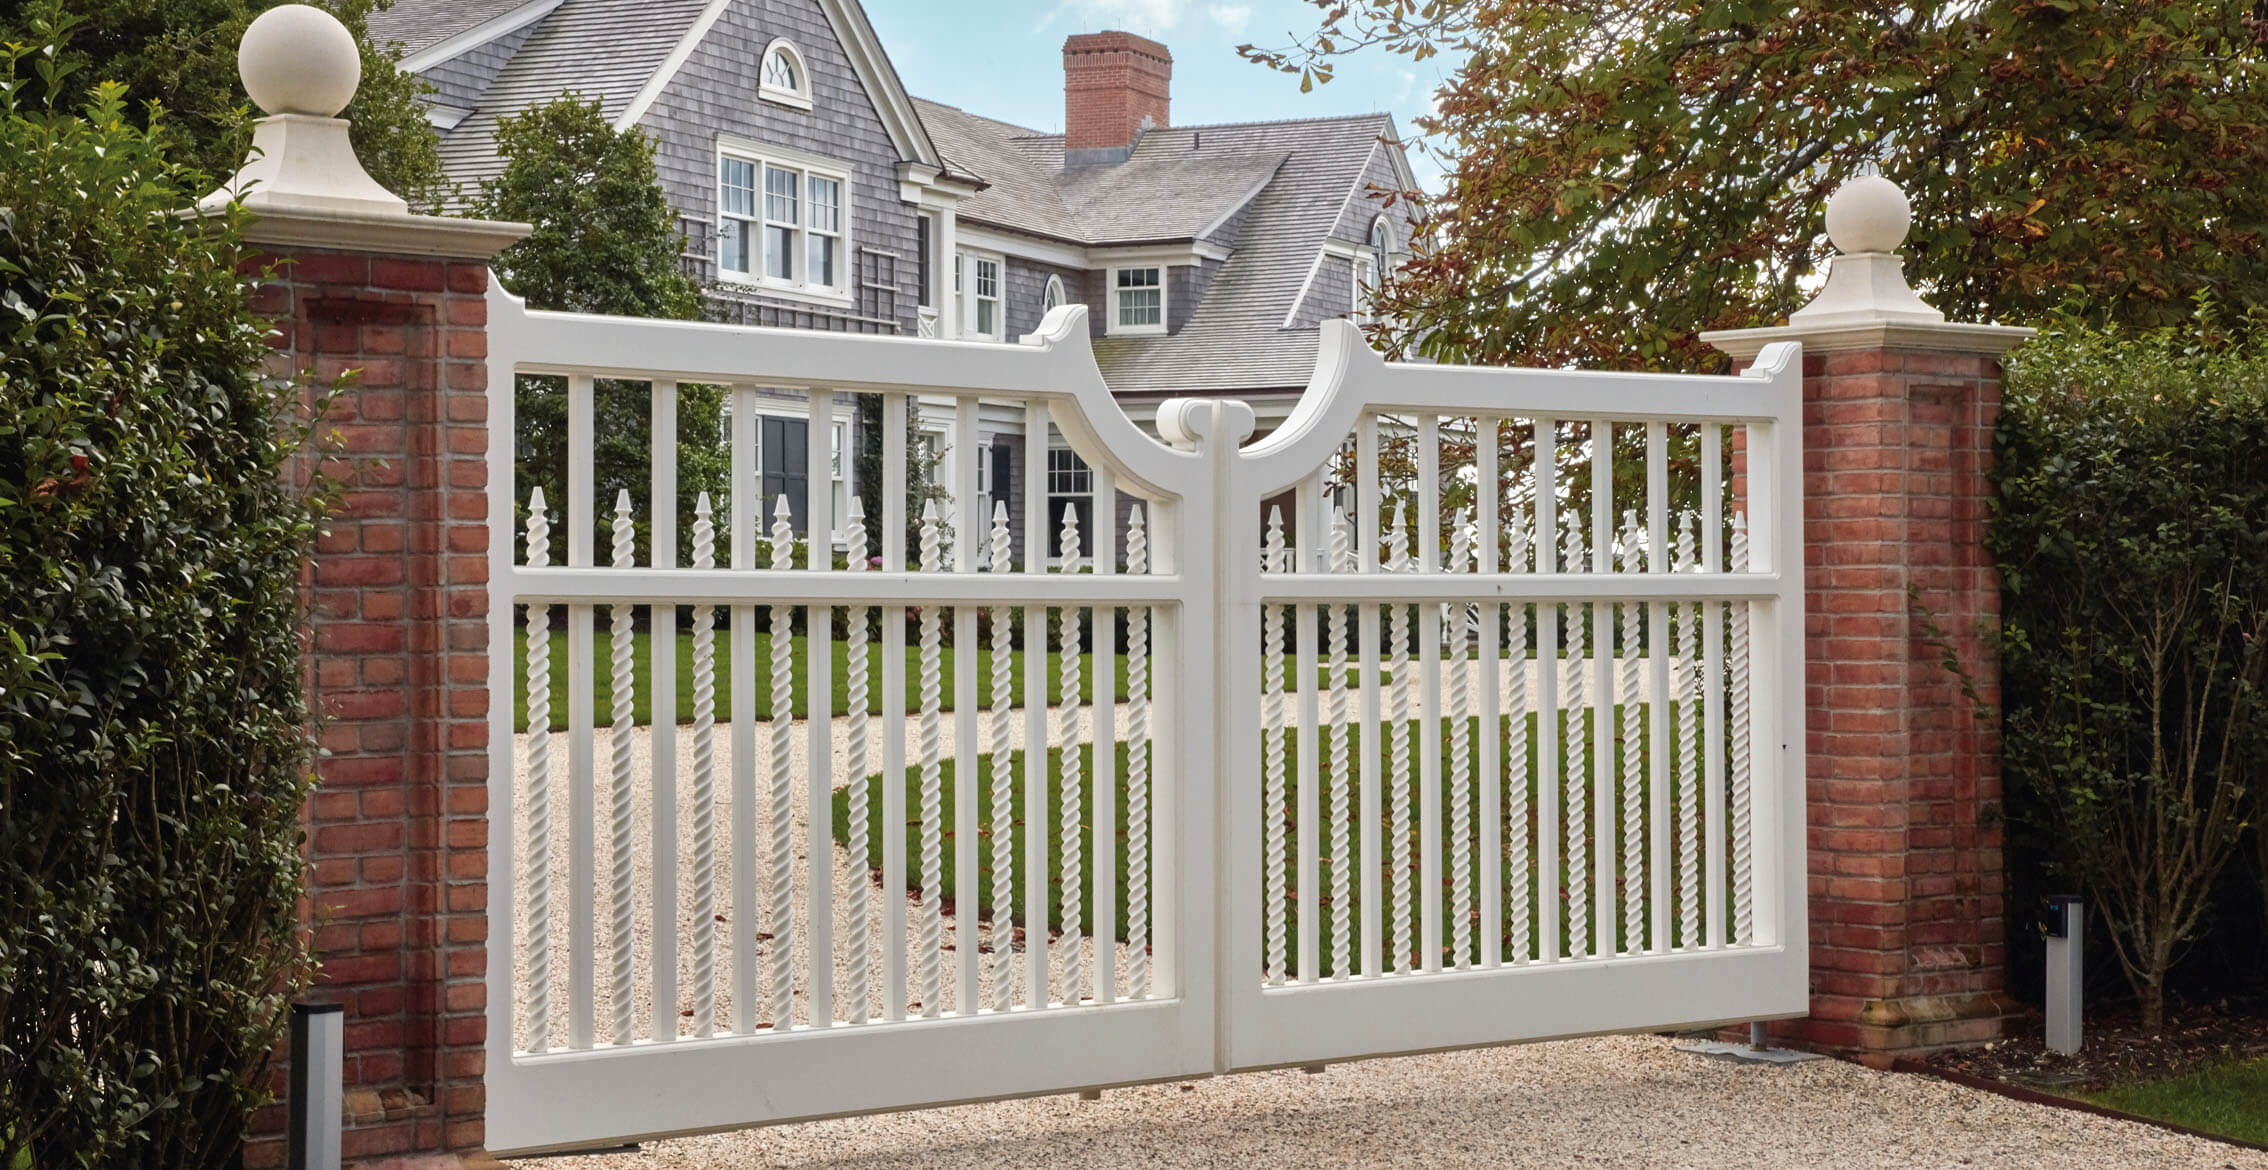 Top 10 Simple Gate Design For Small Houses The Archdigest